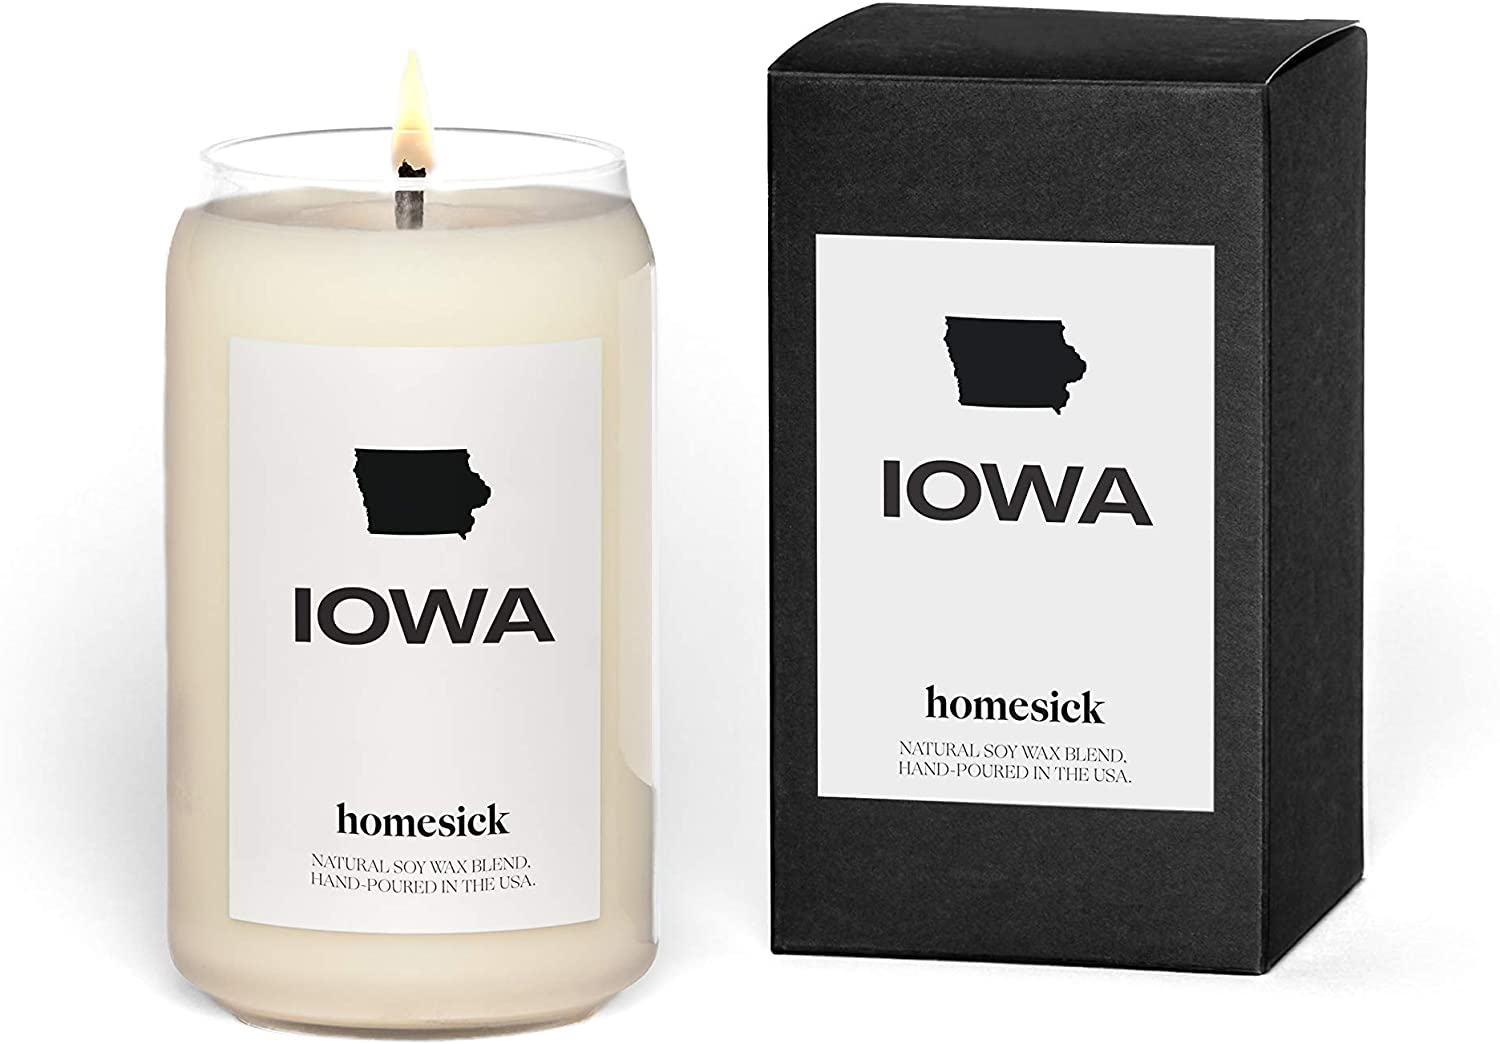 Homesick Scented Candle, Iowa (2020 Version)